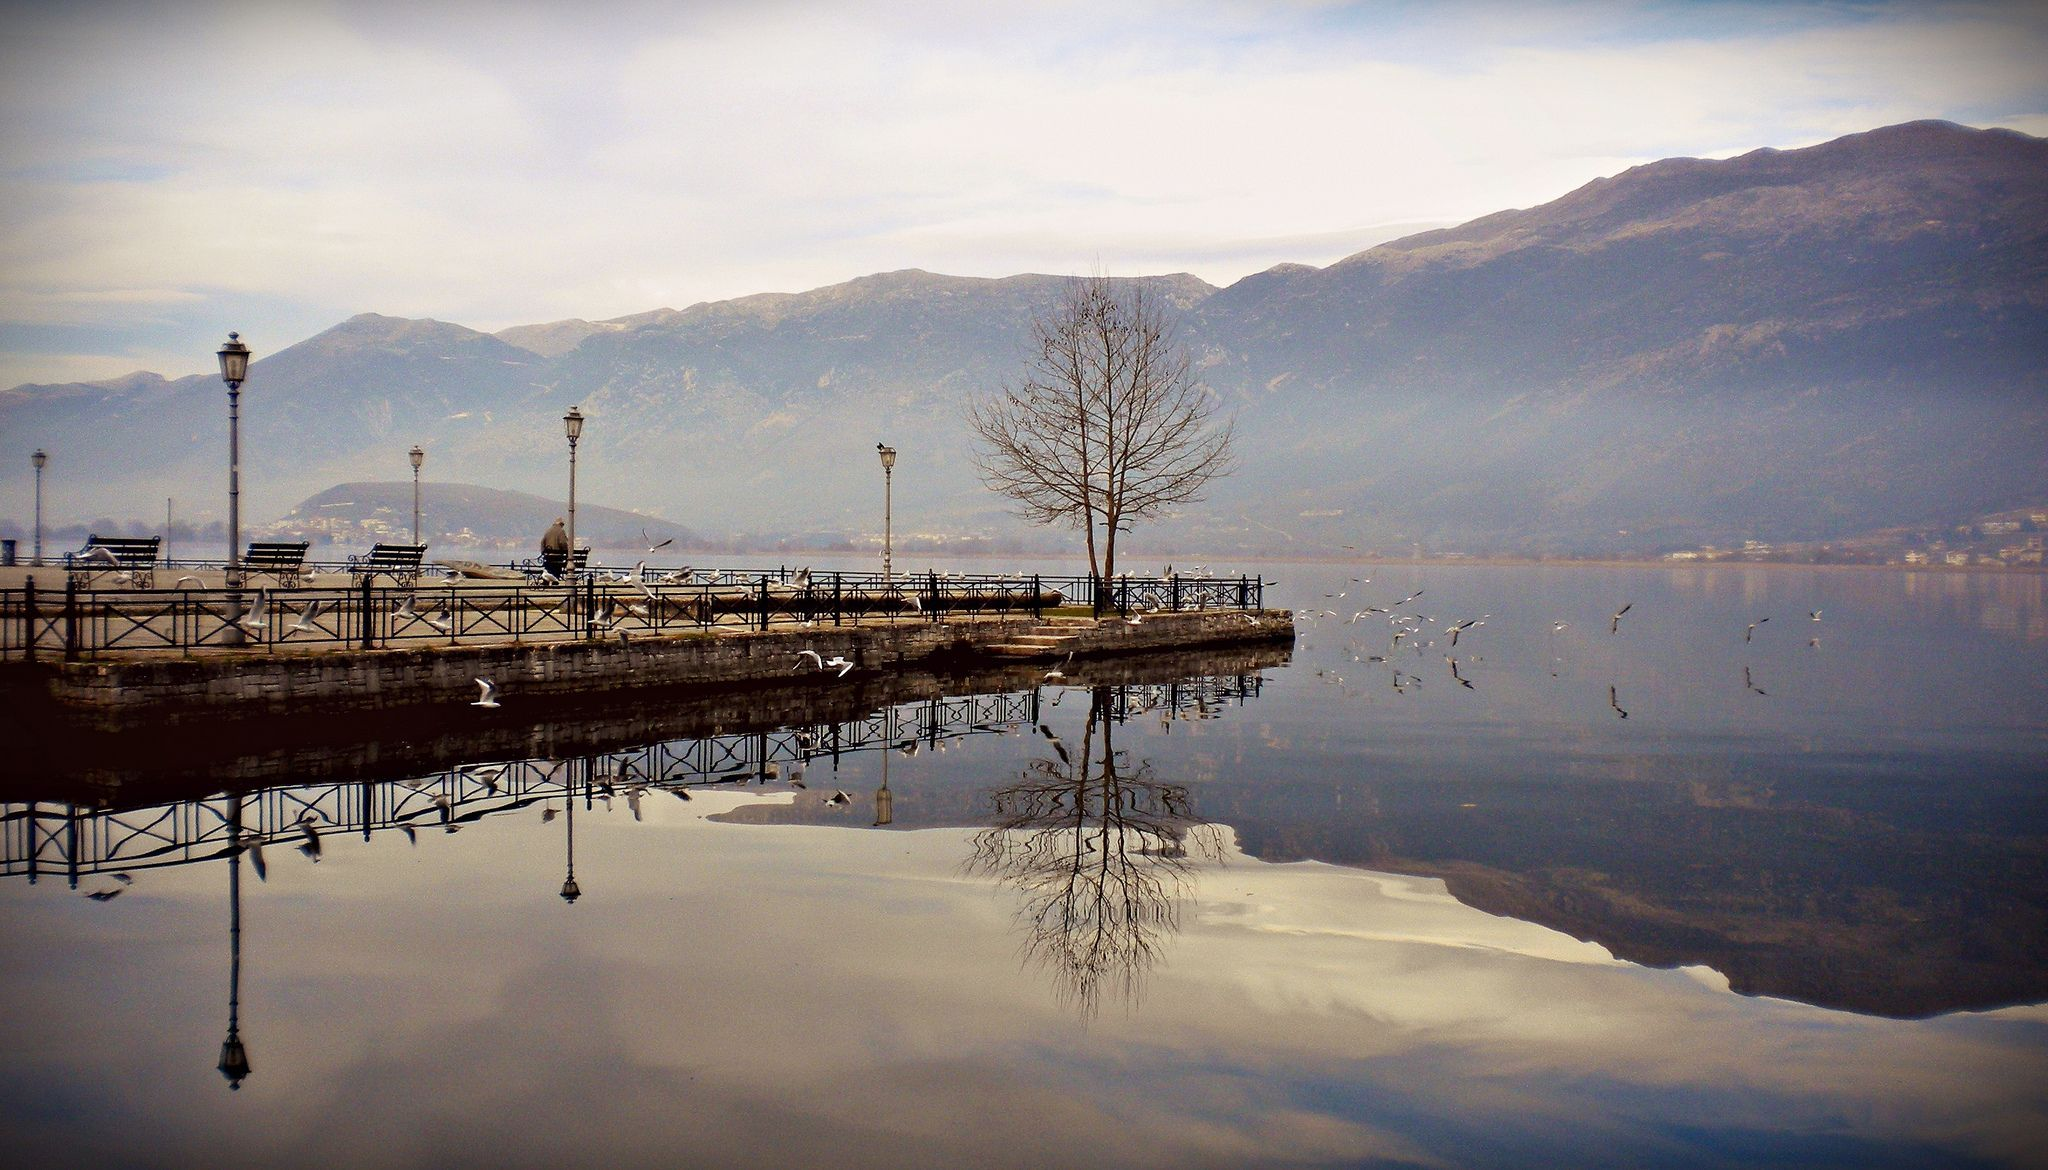 Winter #ioannina-grecce Lake Pamvotida, Ioannina (Greece) - January 2011 #ioannina-grecce